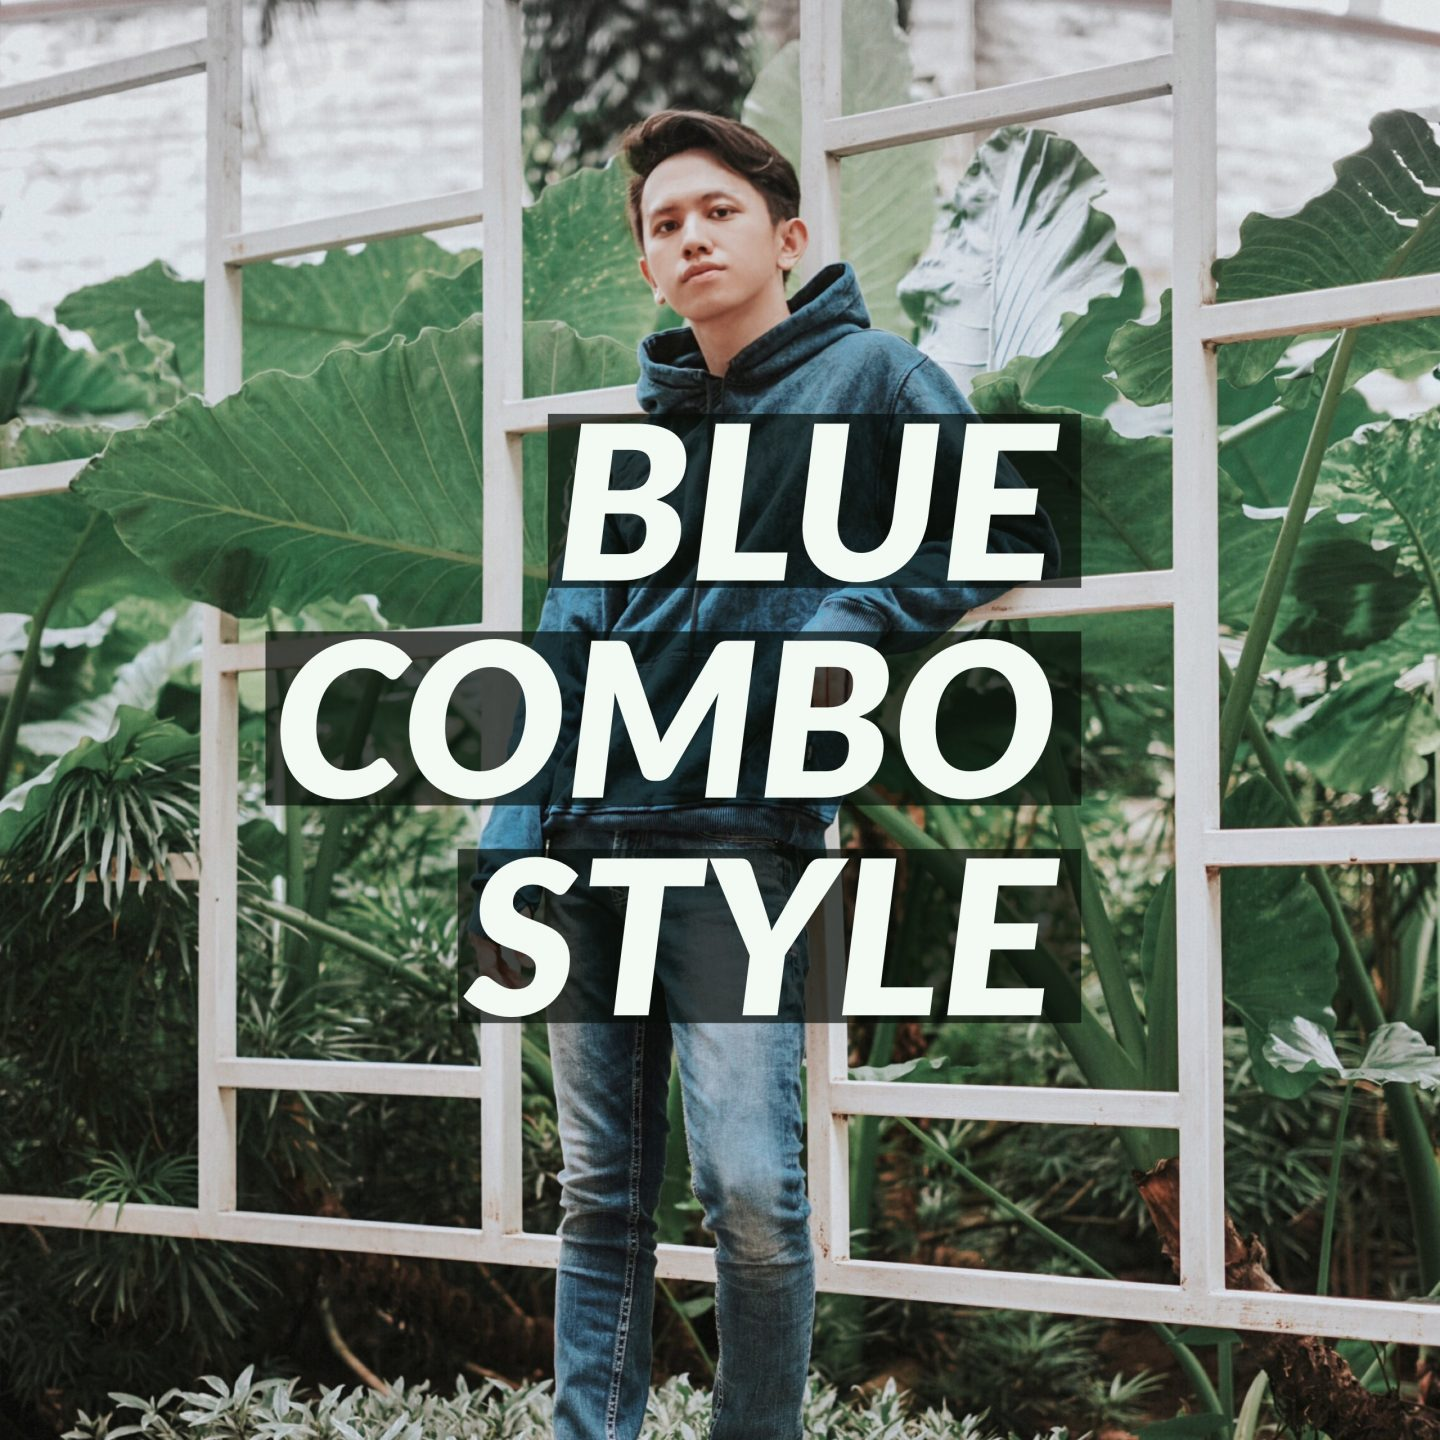 BLUE COMBO STYLE